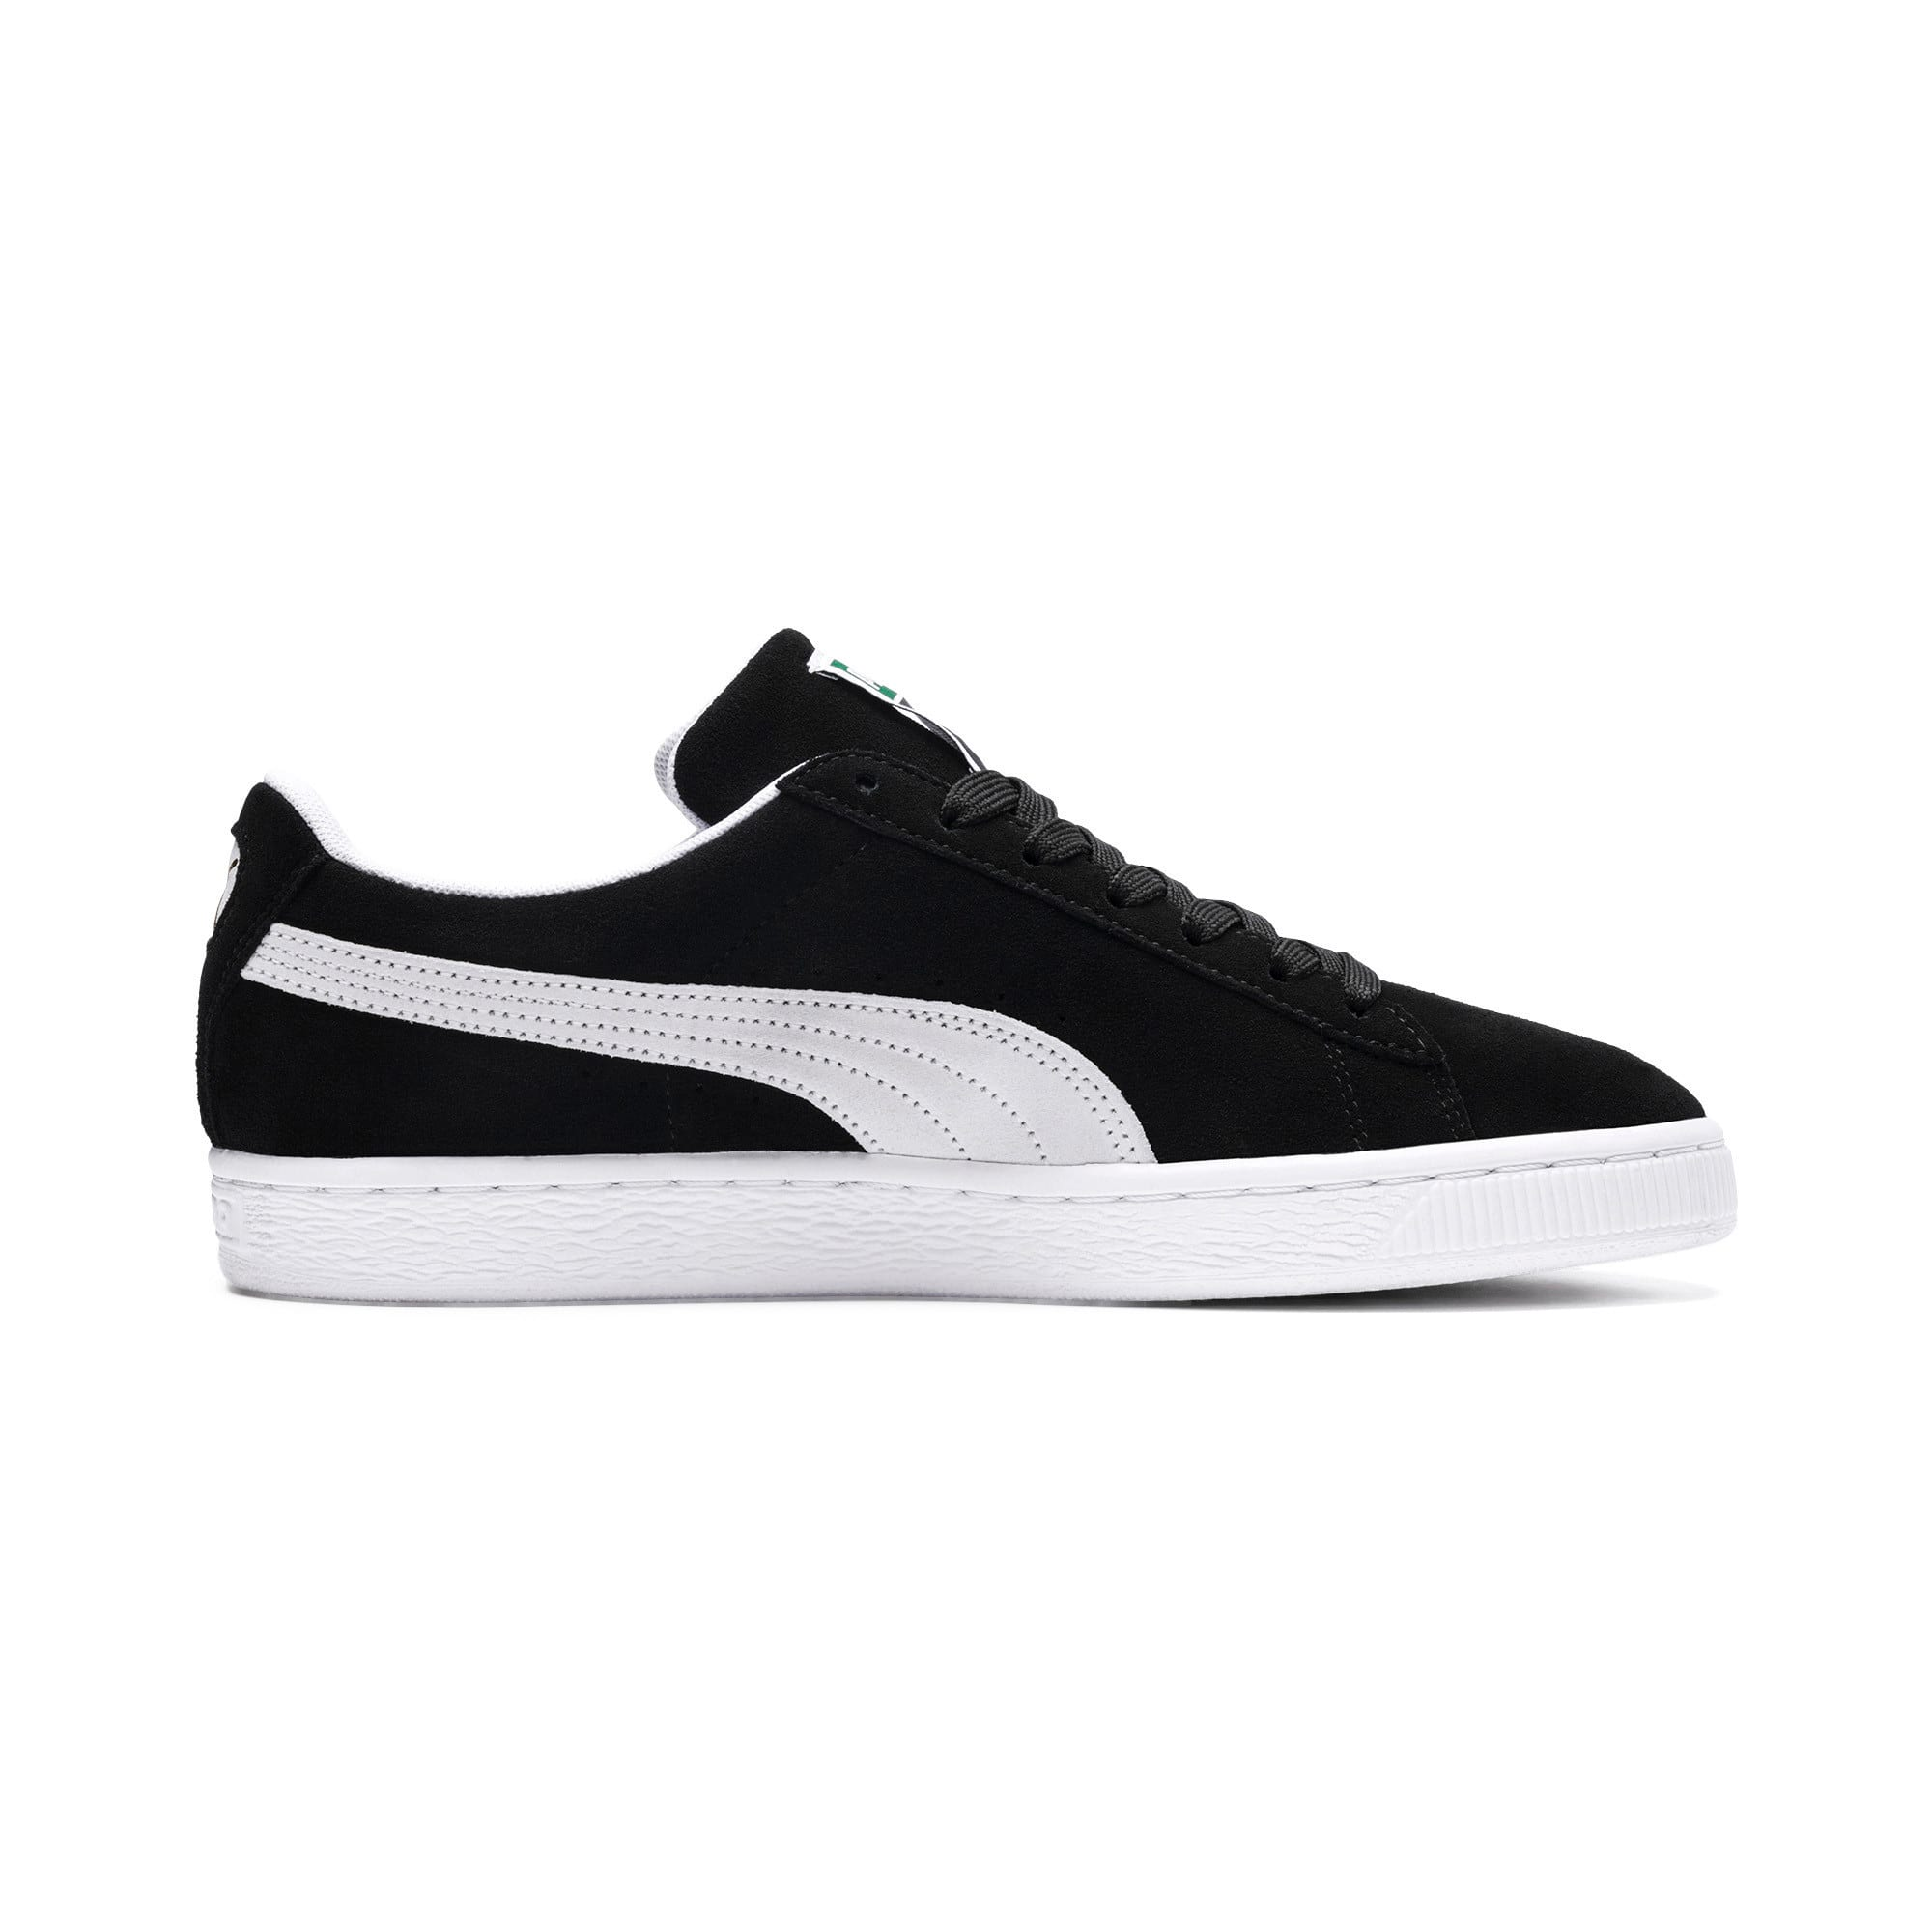 Sneakers Suede Classic Women's Sneakers Classic Suede Women's vmONy80wnP